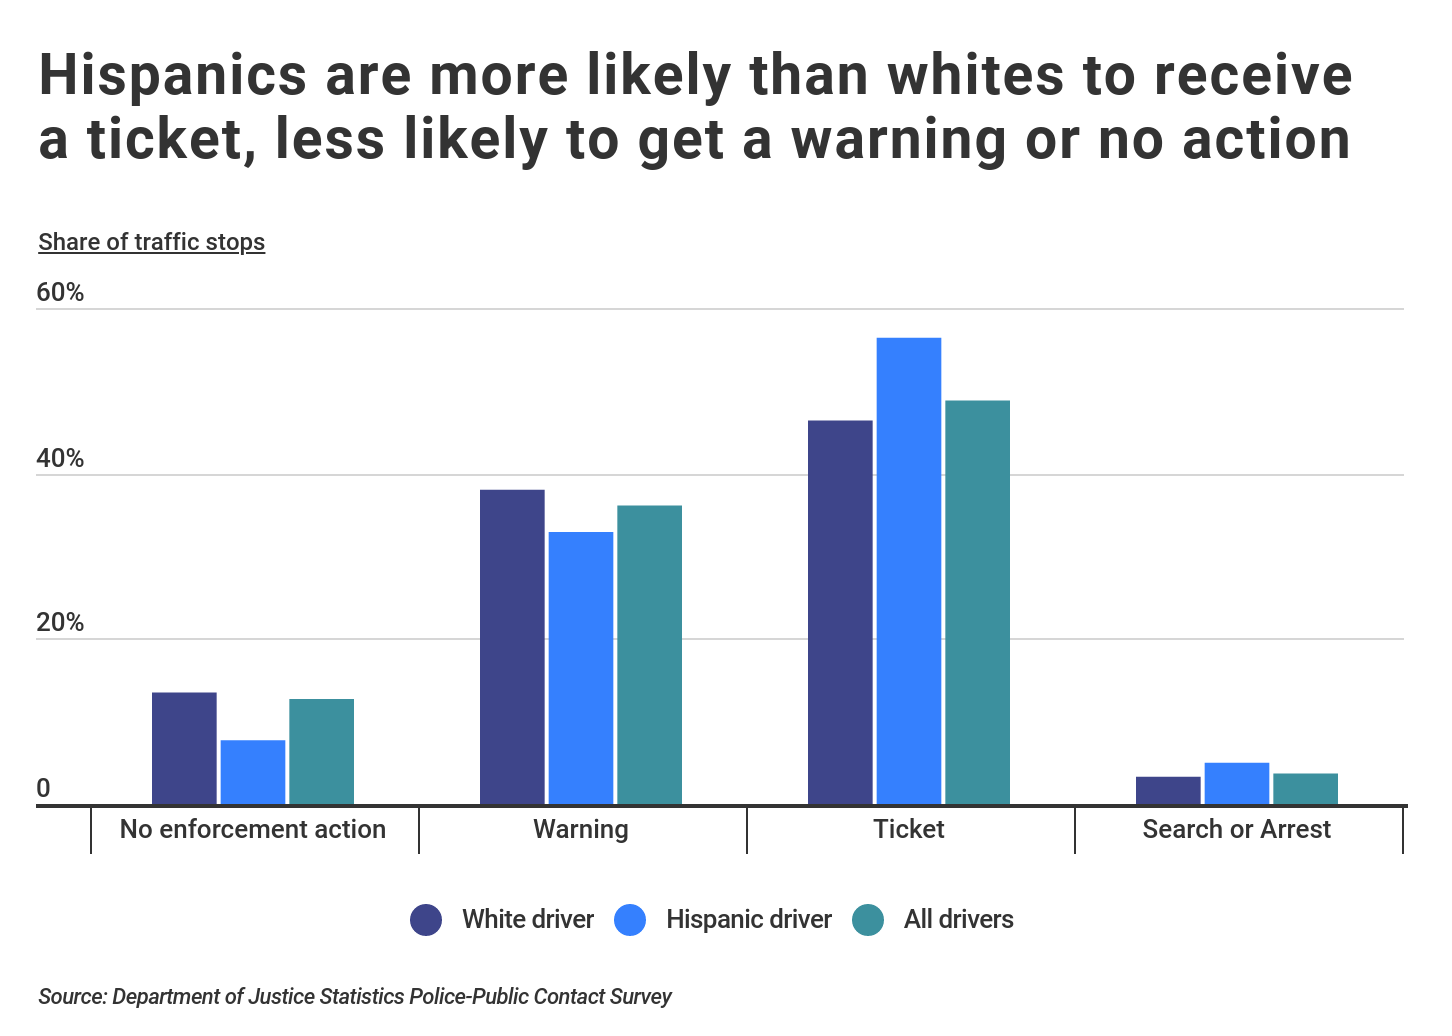 Graph illustrating drivers' likelihood of getting a traffic ticket based on their race